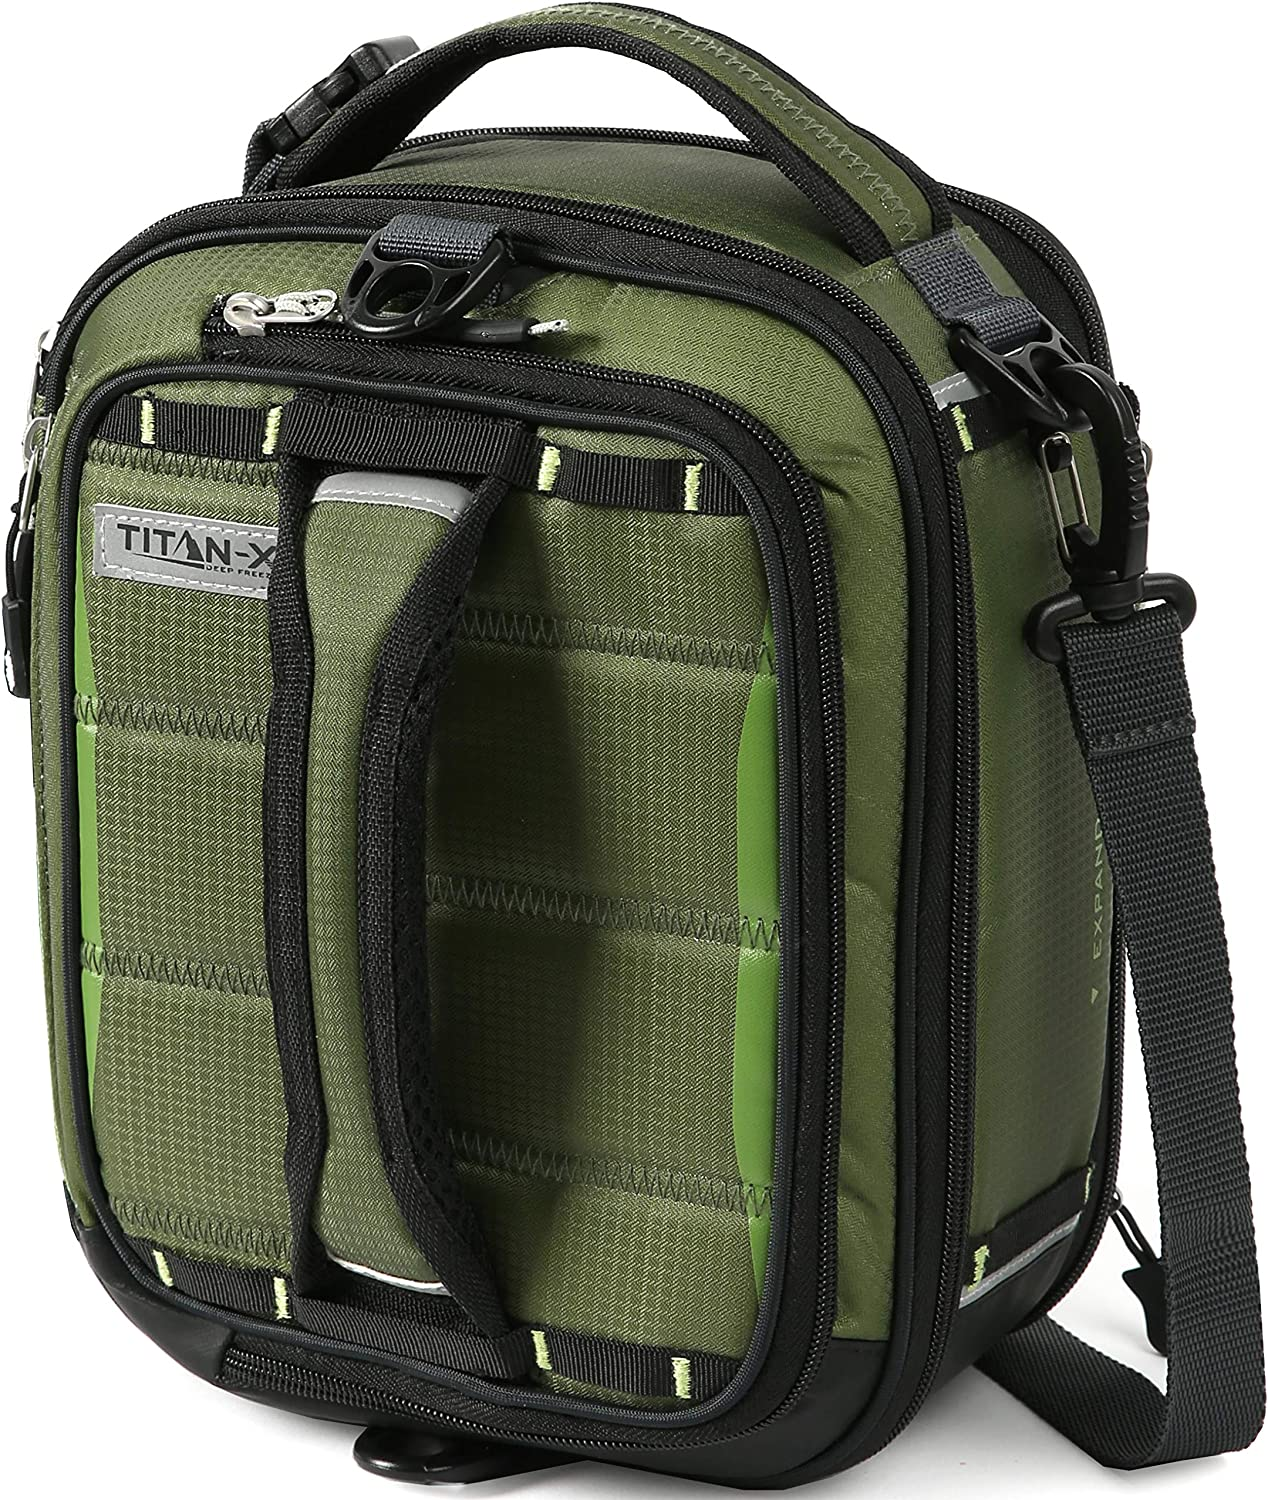 Arctic Zone Titan X Dual Compartment Insulated Expandable Lunch Pack, Olive Green